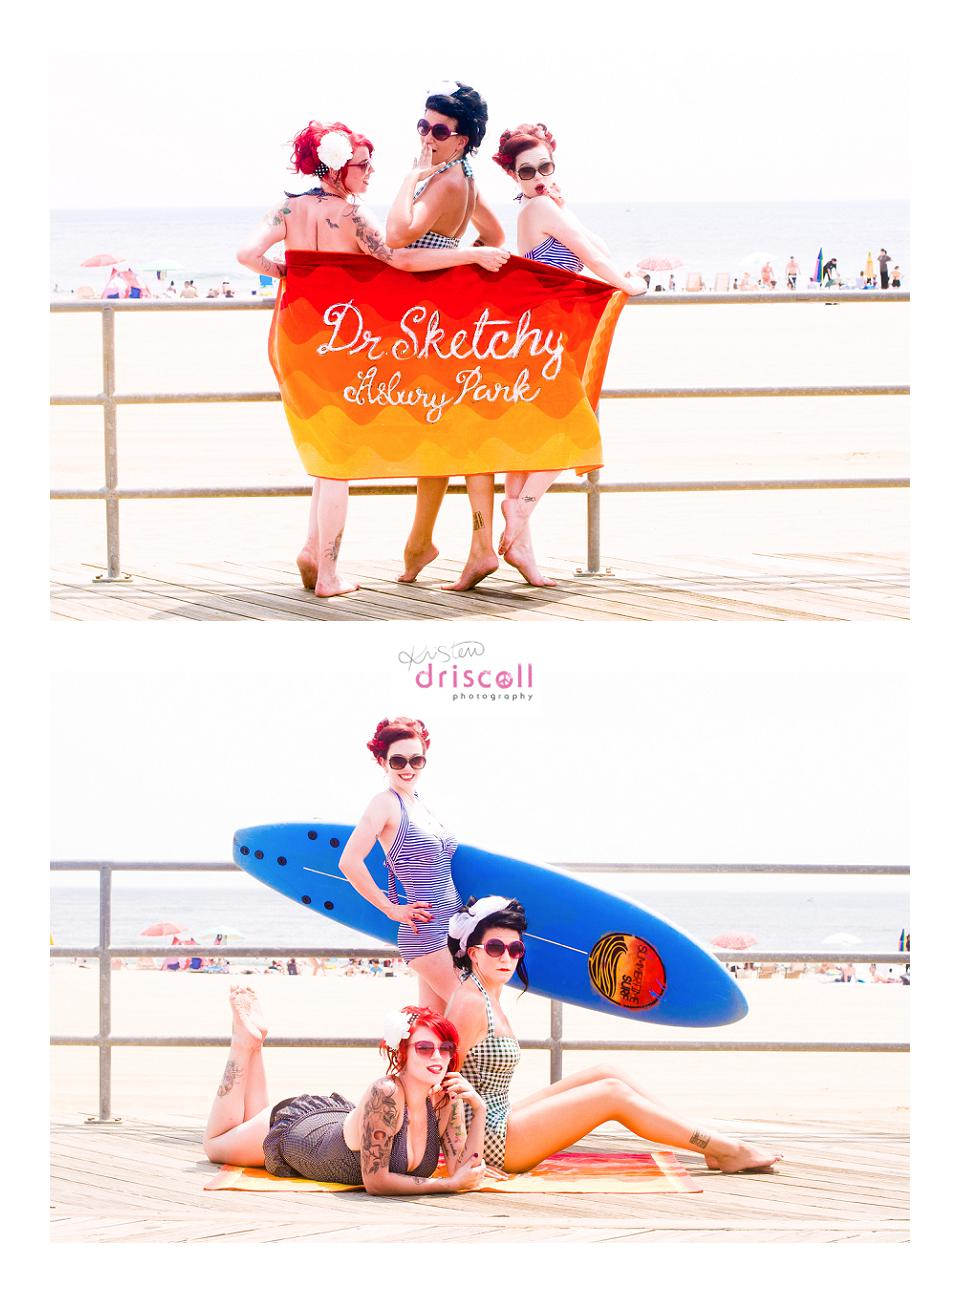 dr-sketchy-pinup-asbury-park-nj-kristen-driscoll-photography-20120707_0001